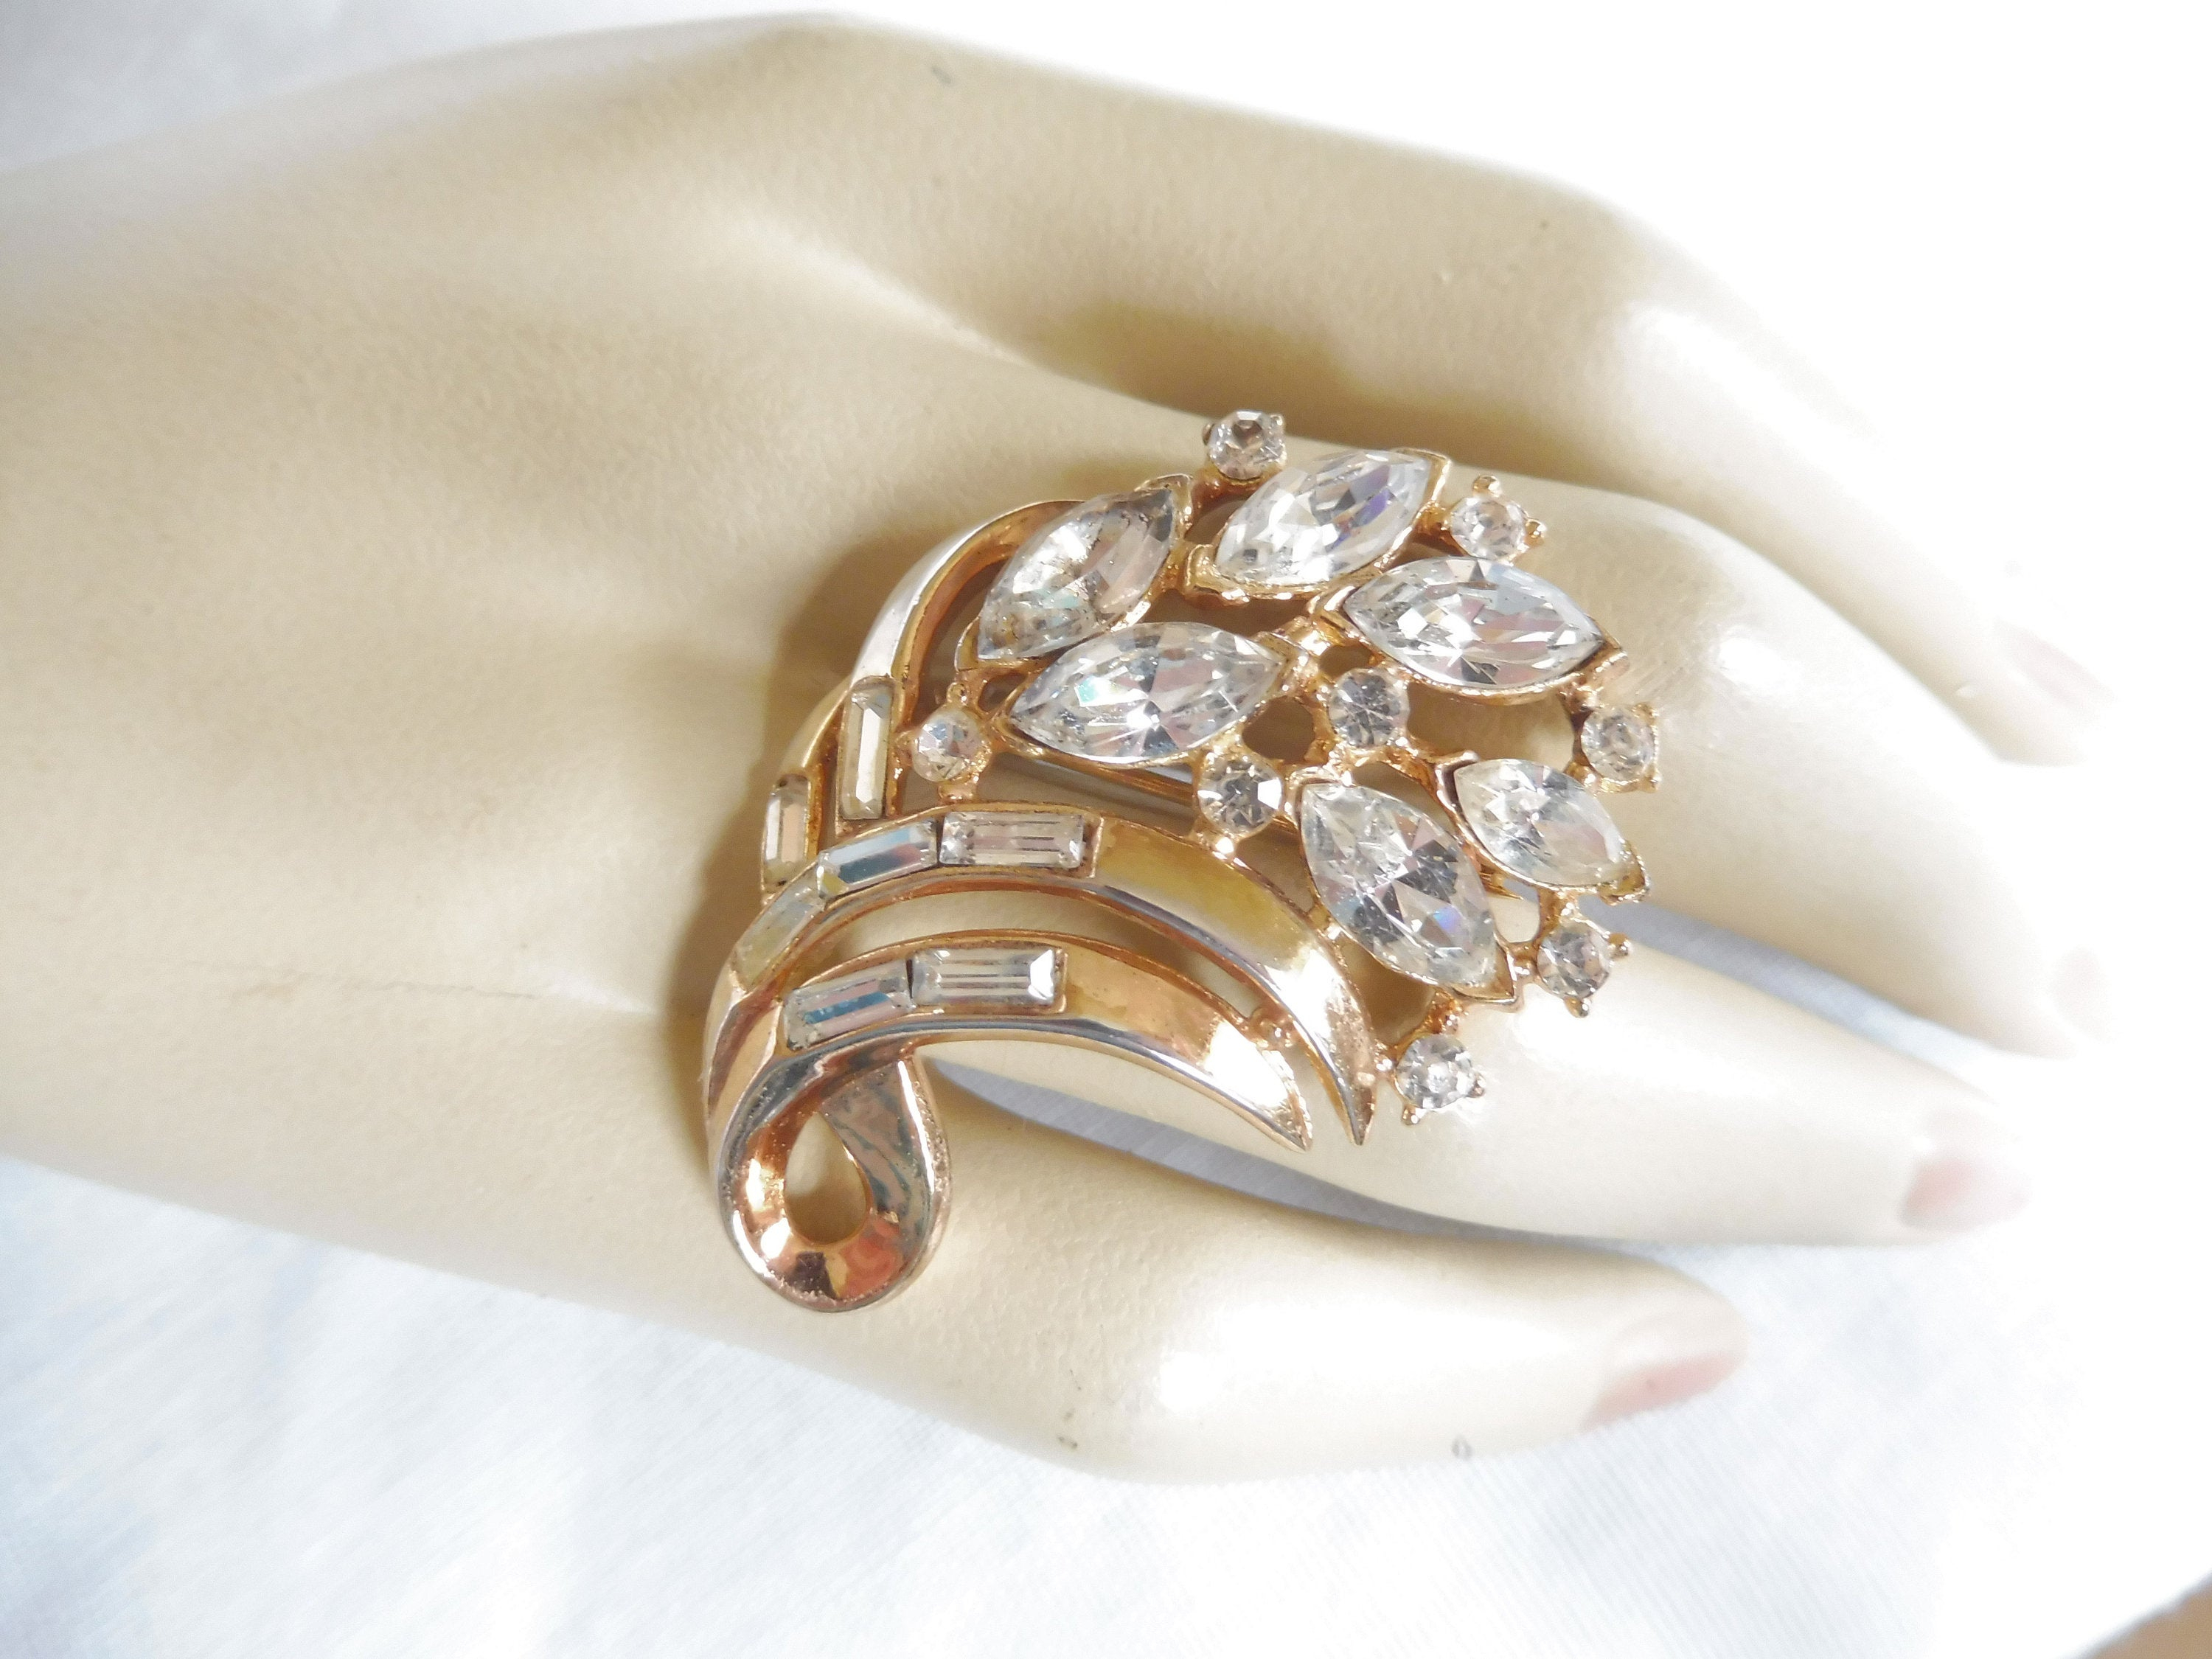 Vintage Crown Trifari Sparkling Clear Marquise Rhinestone Spray Brooch Pin Intended For Best And Newest Clear Sparkling Crown Rings (Gallery 16 of 25)